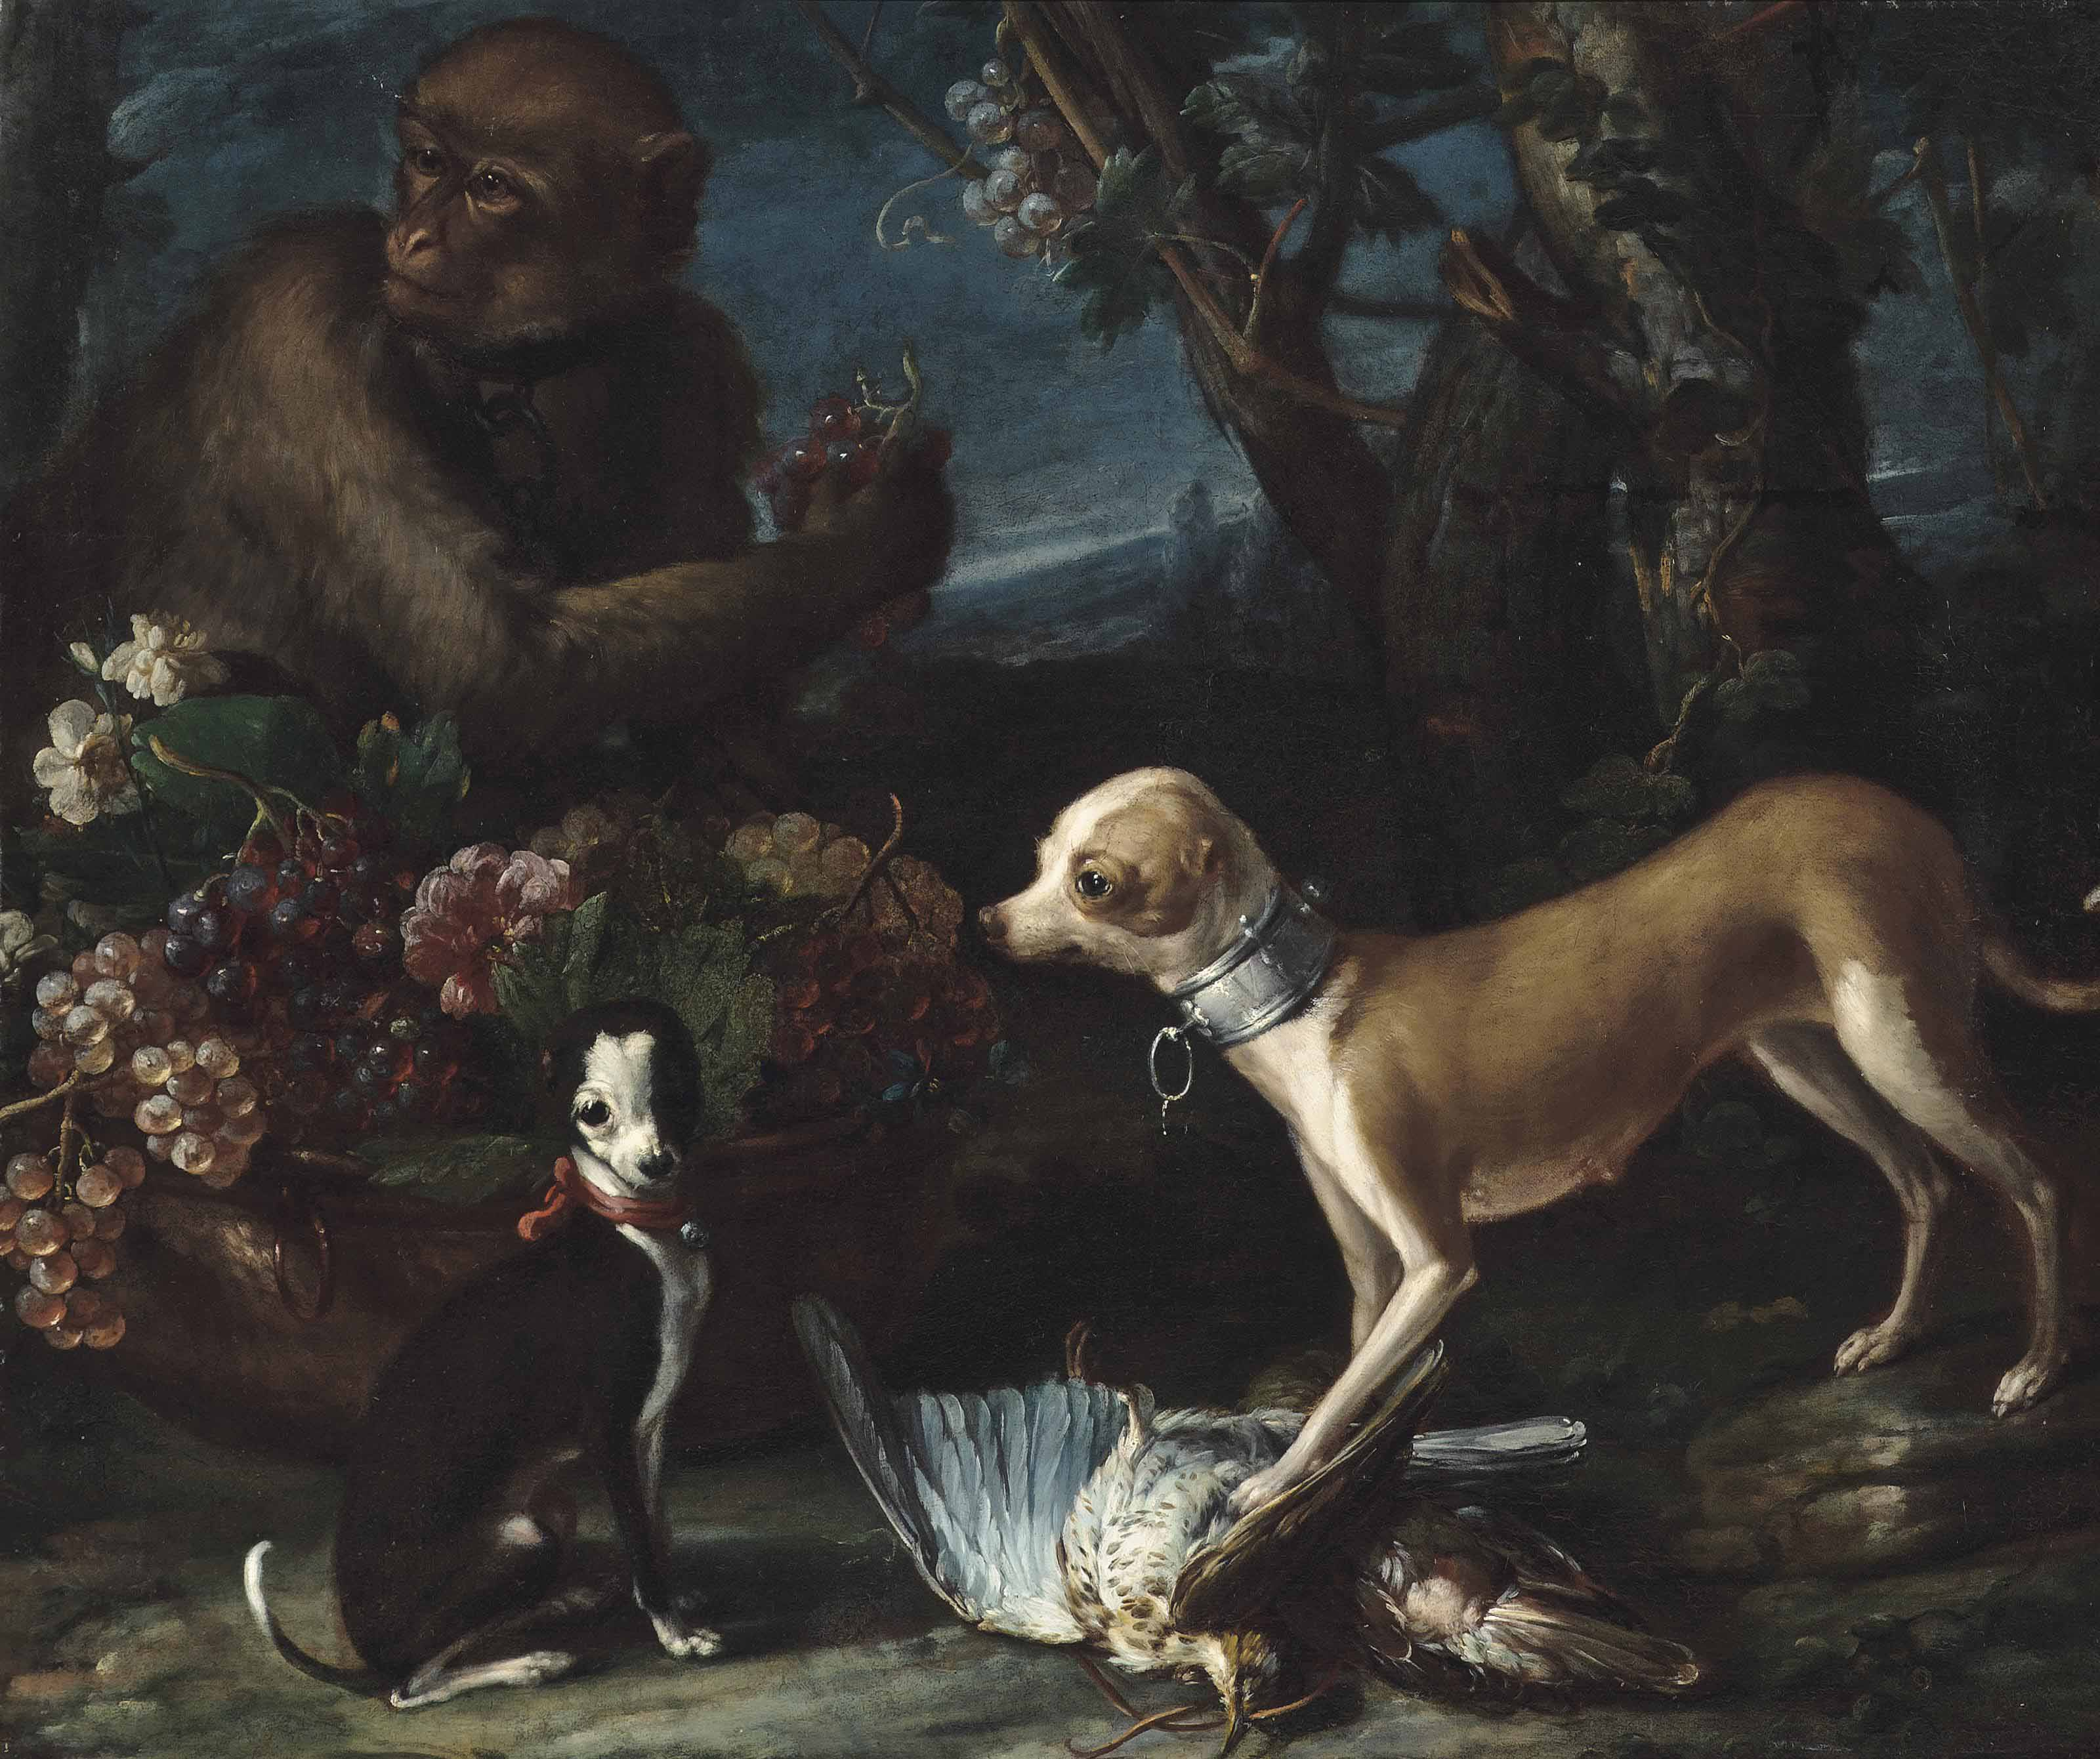 https://www.christies.com/img/LotImages/2014/CSK/2014_CSK_05660_0204_000(candido_vitali_two_dogs_a_brace_of_woodcock_a_monkey_holding_a_bunch_o).jpg